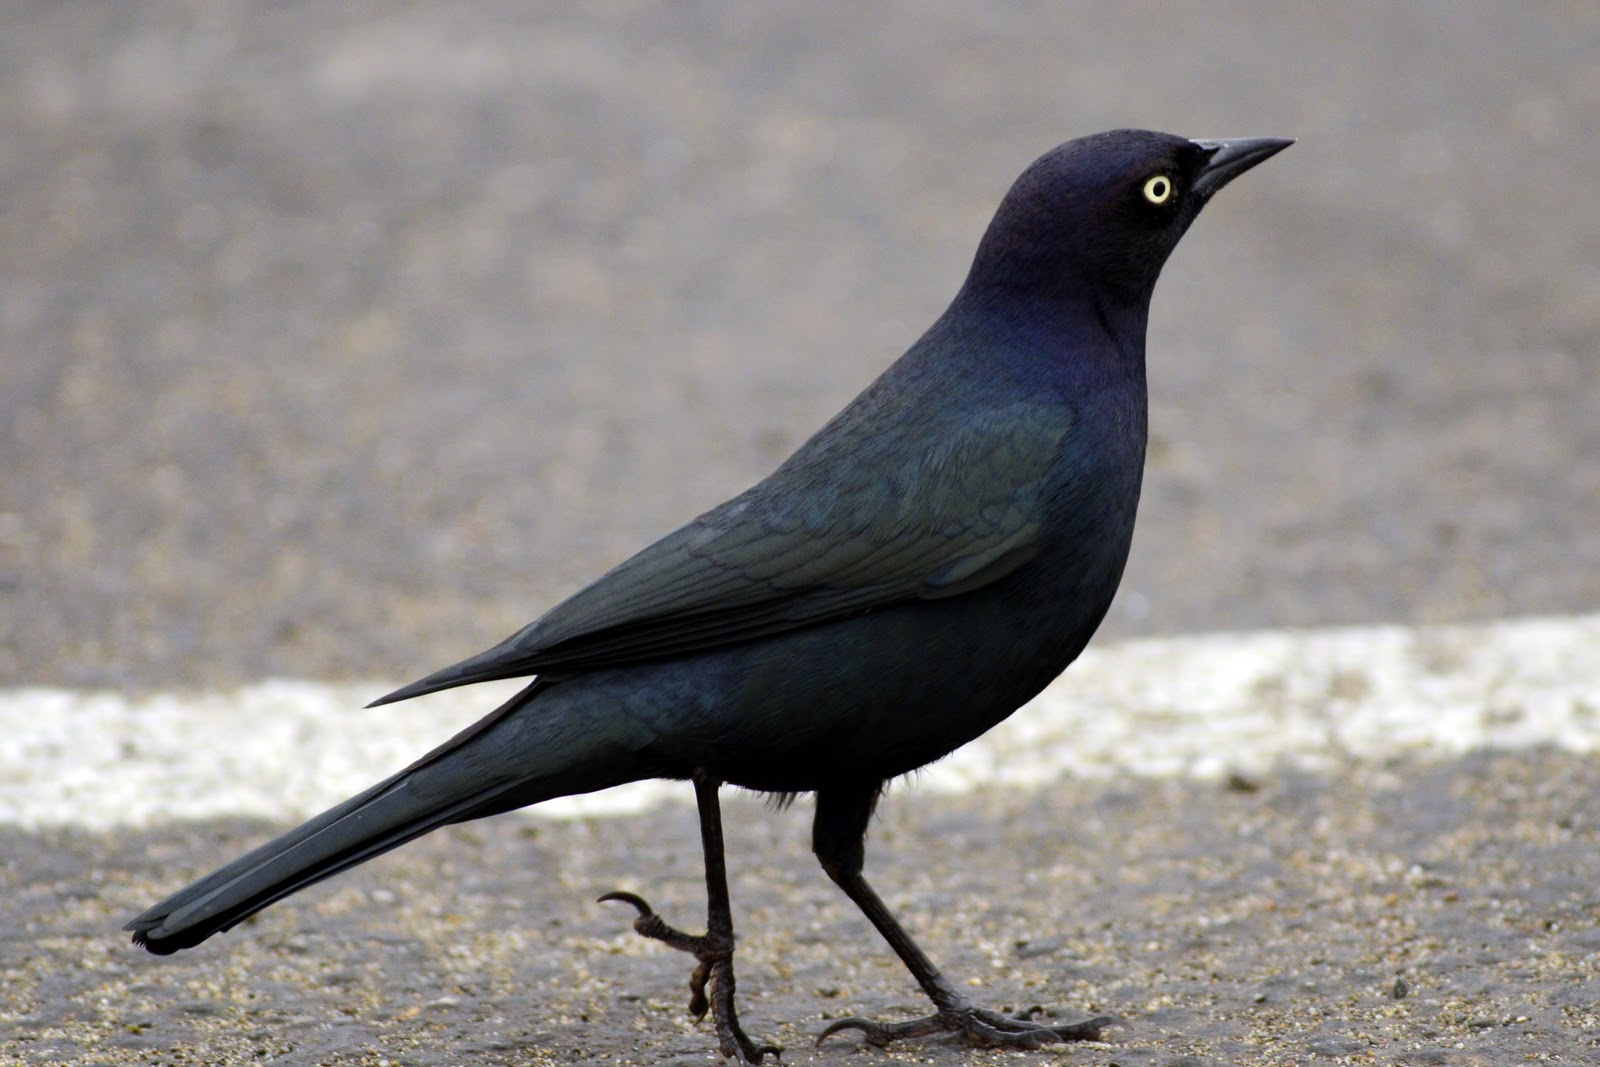 The Nature of Framingham: Those Cute Western Blackbirds